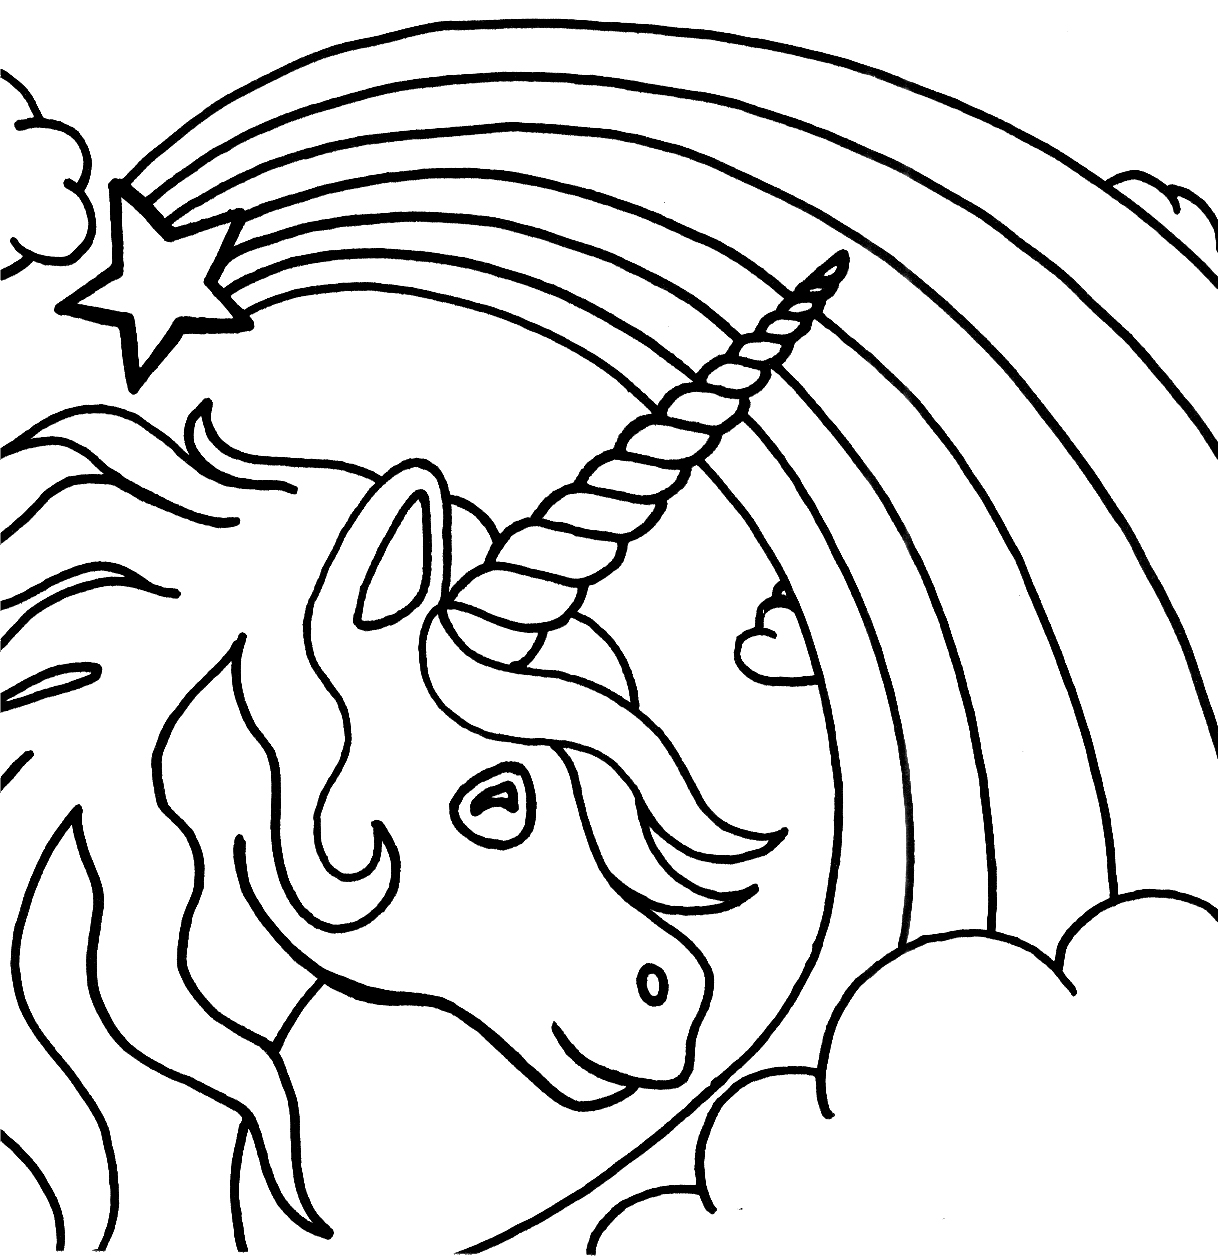 Coloring Pages Unicorn Coloring Pages Online free printable unicorn coloring pages for kids kids